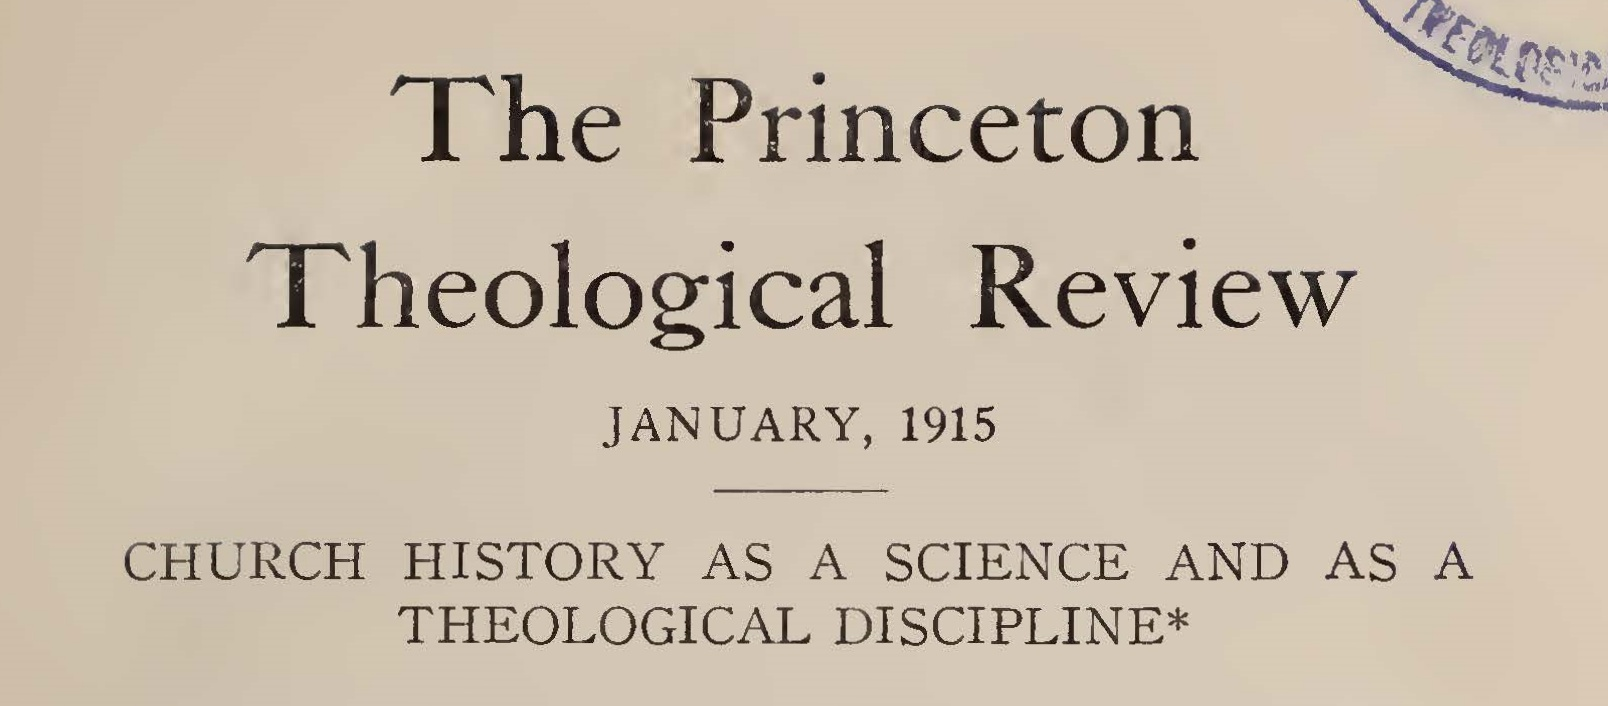 Loetscher, Frederick William, Church History as a Science and as a Theological Discipline Title Page.jpg